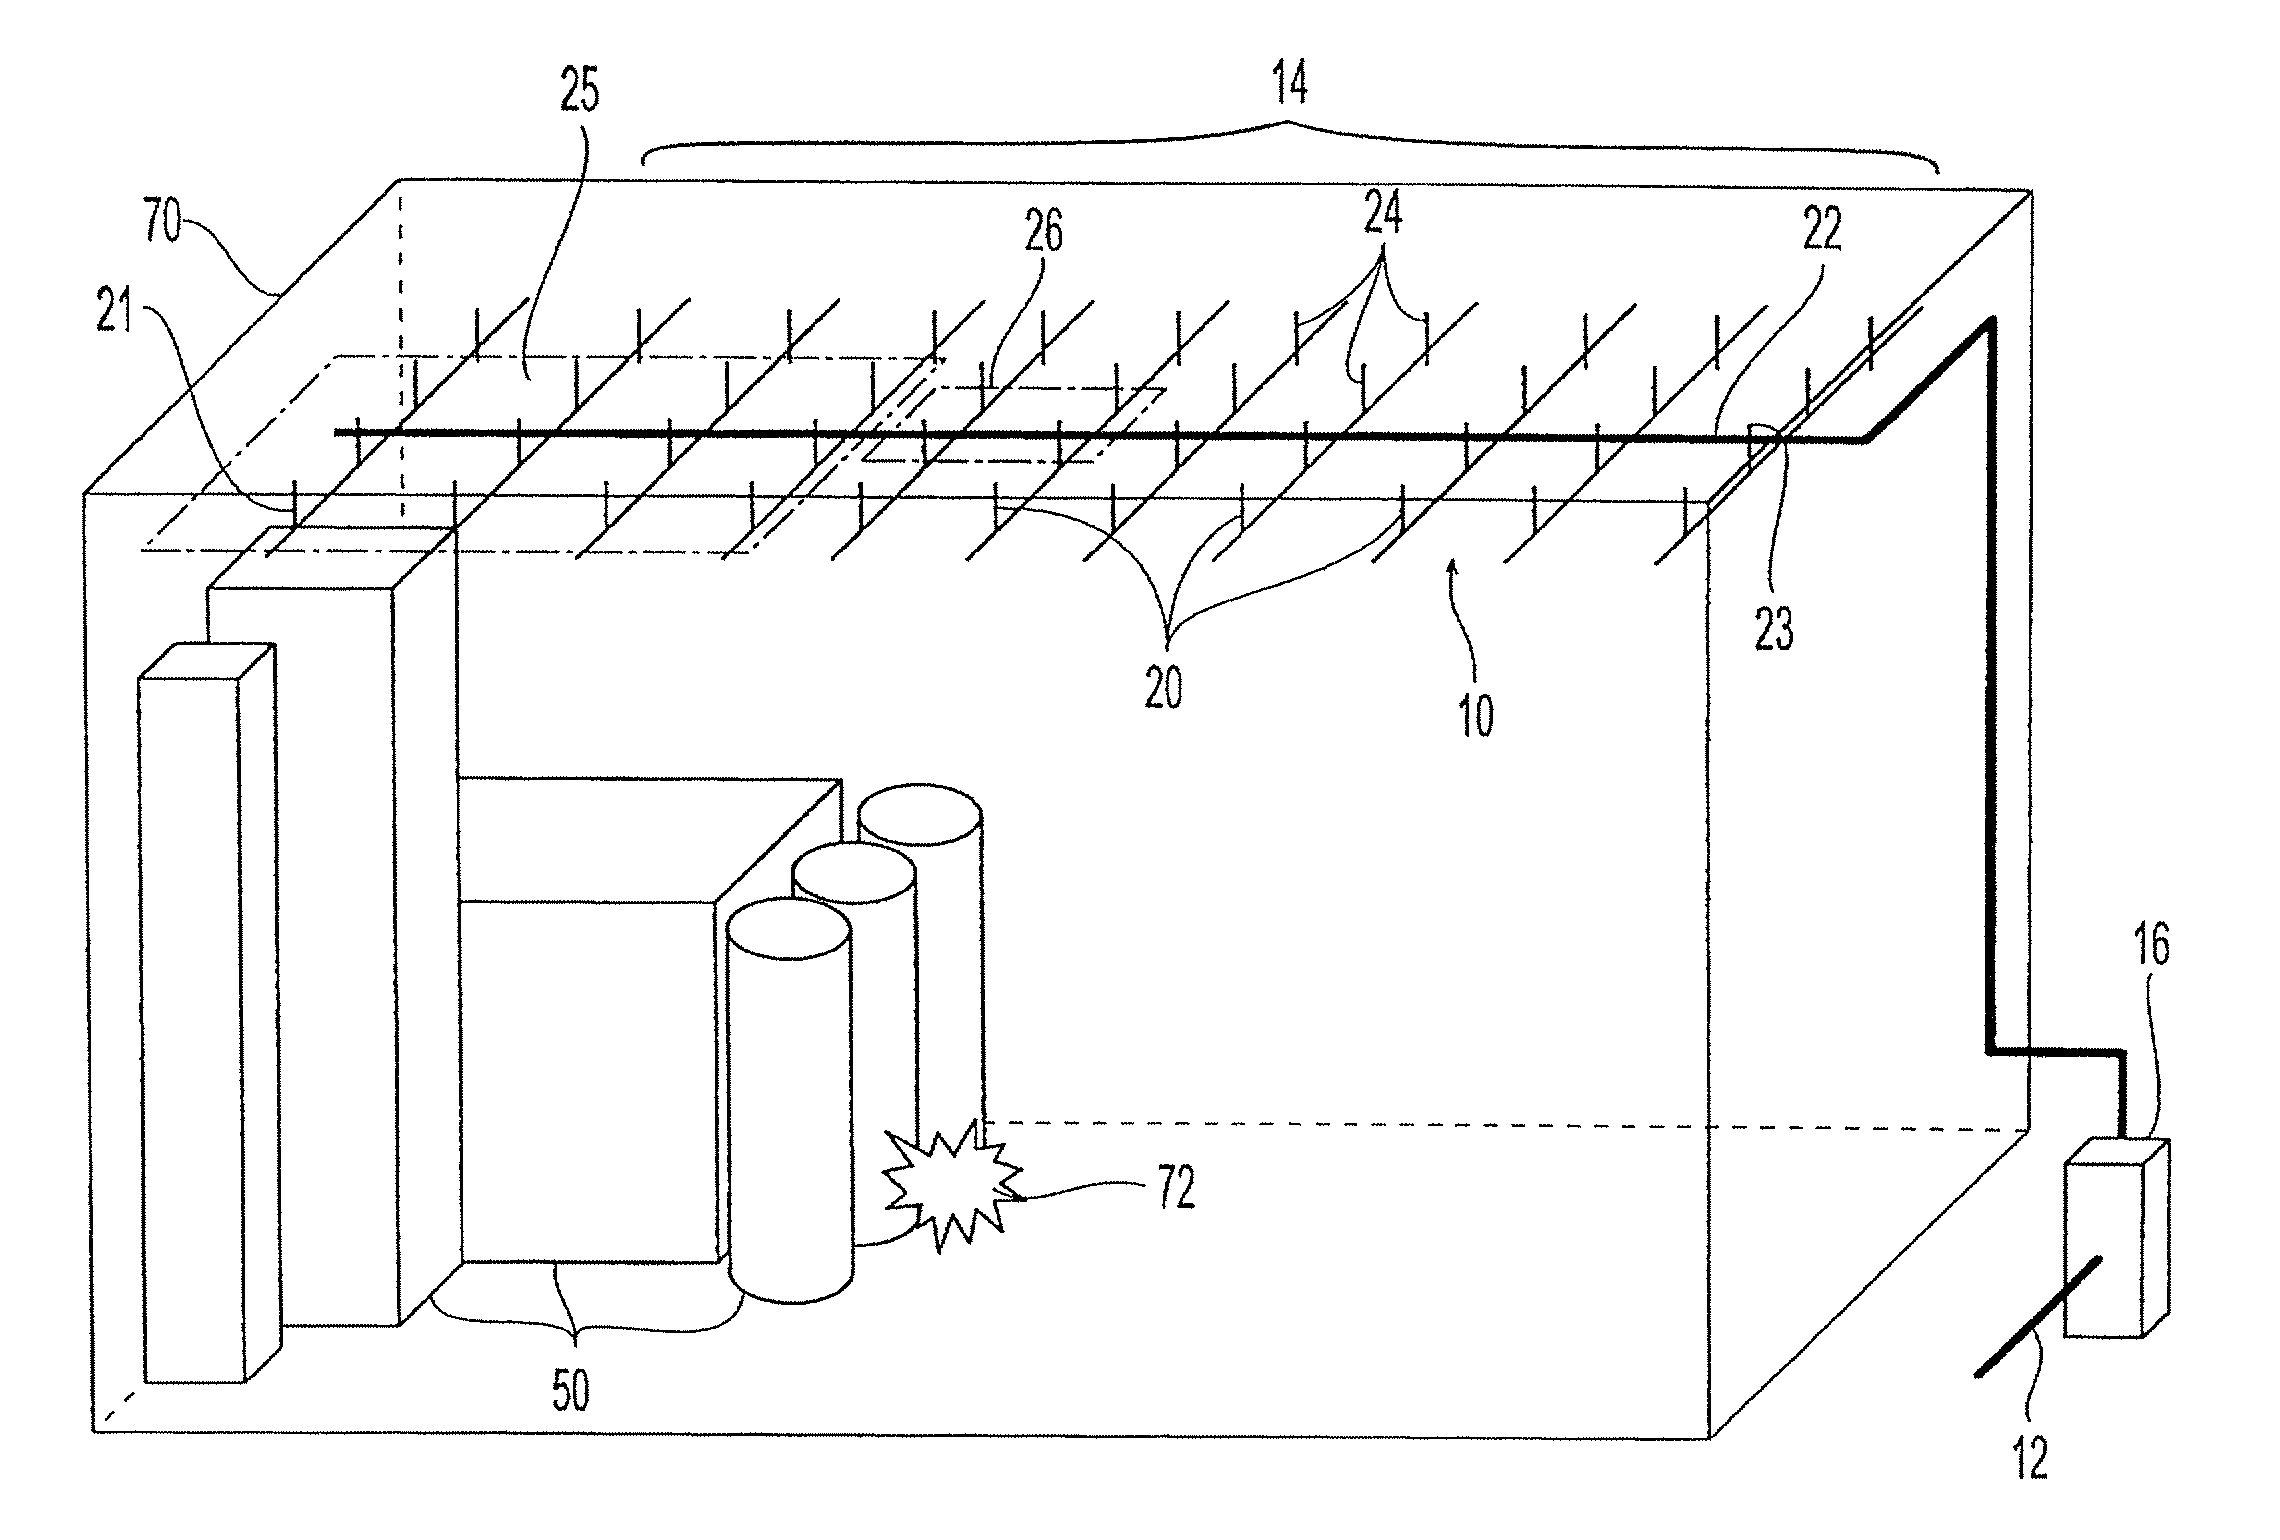 dry pipe sprinkler system riser diagram draw venn in word